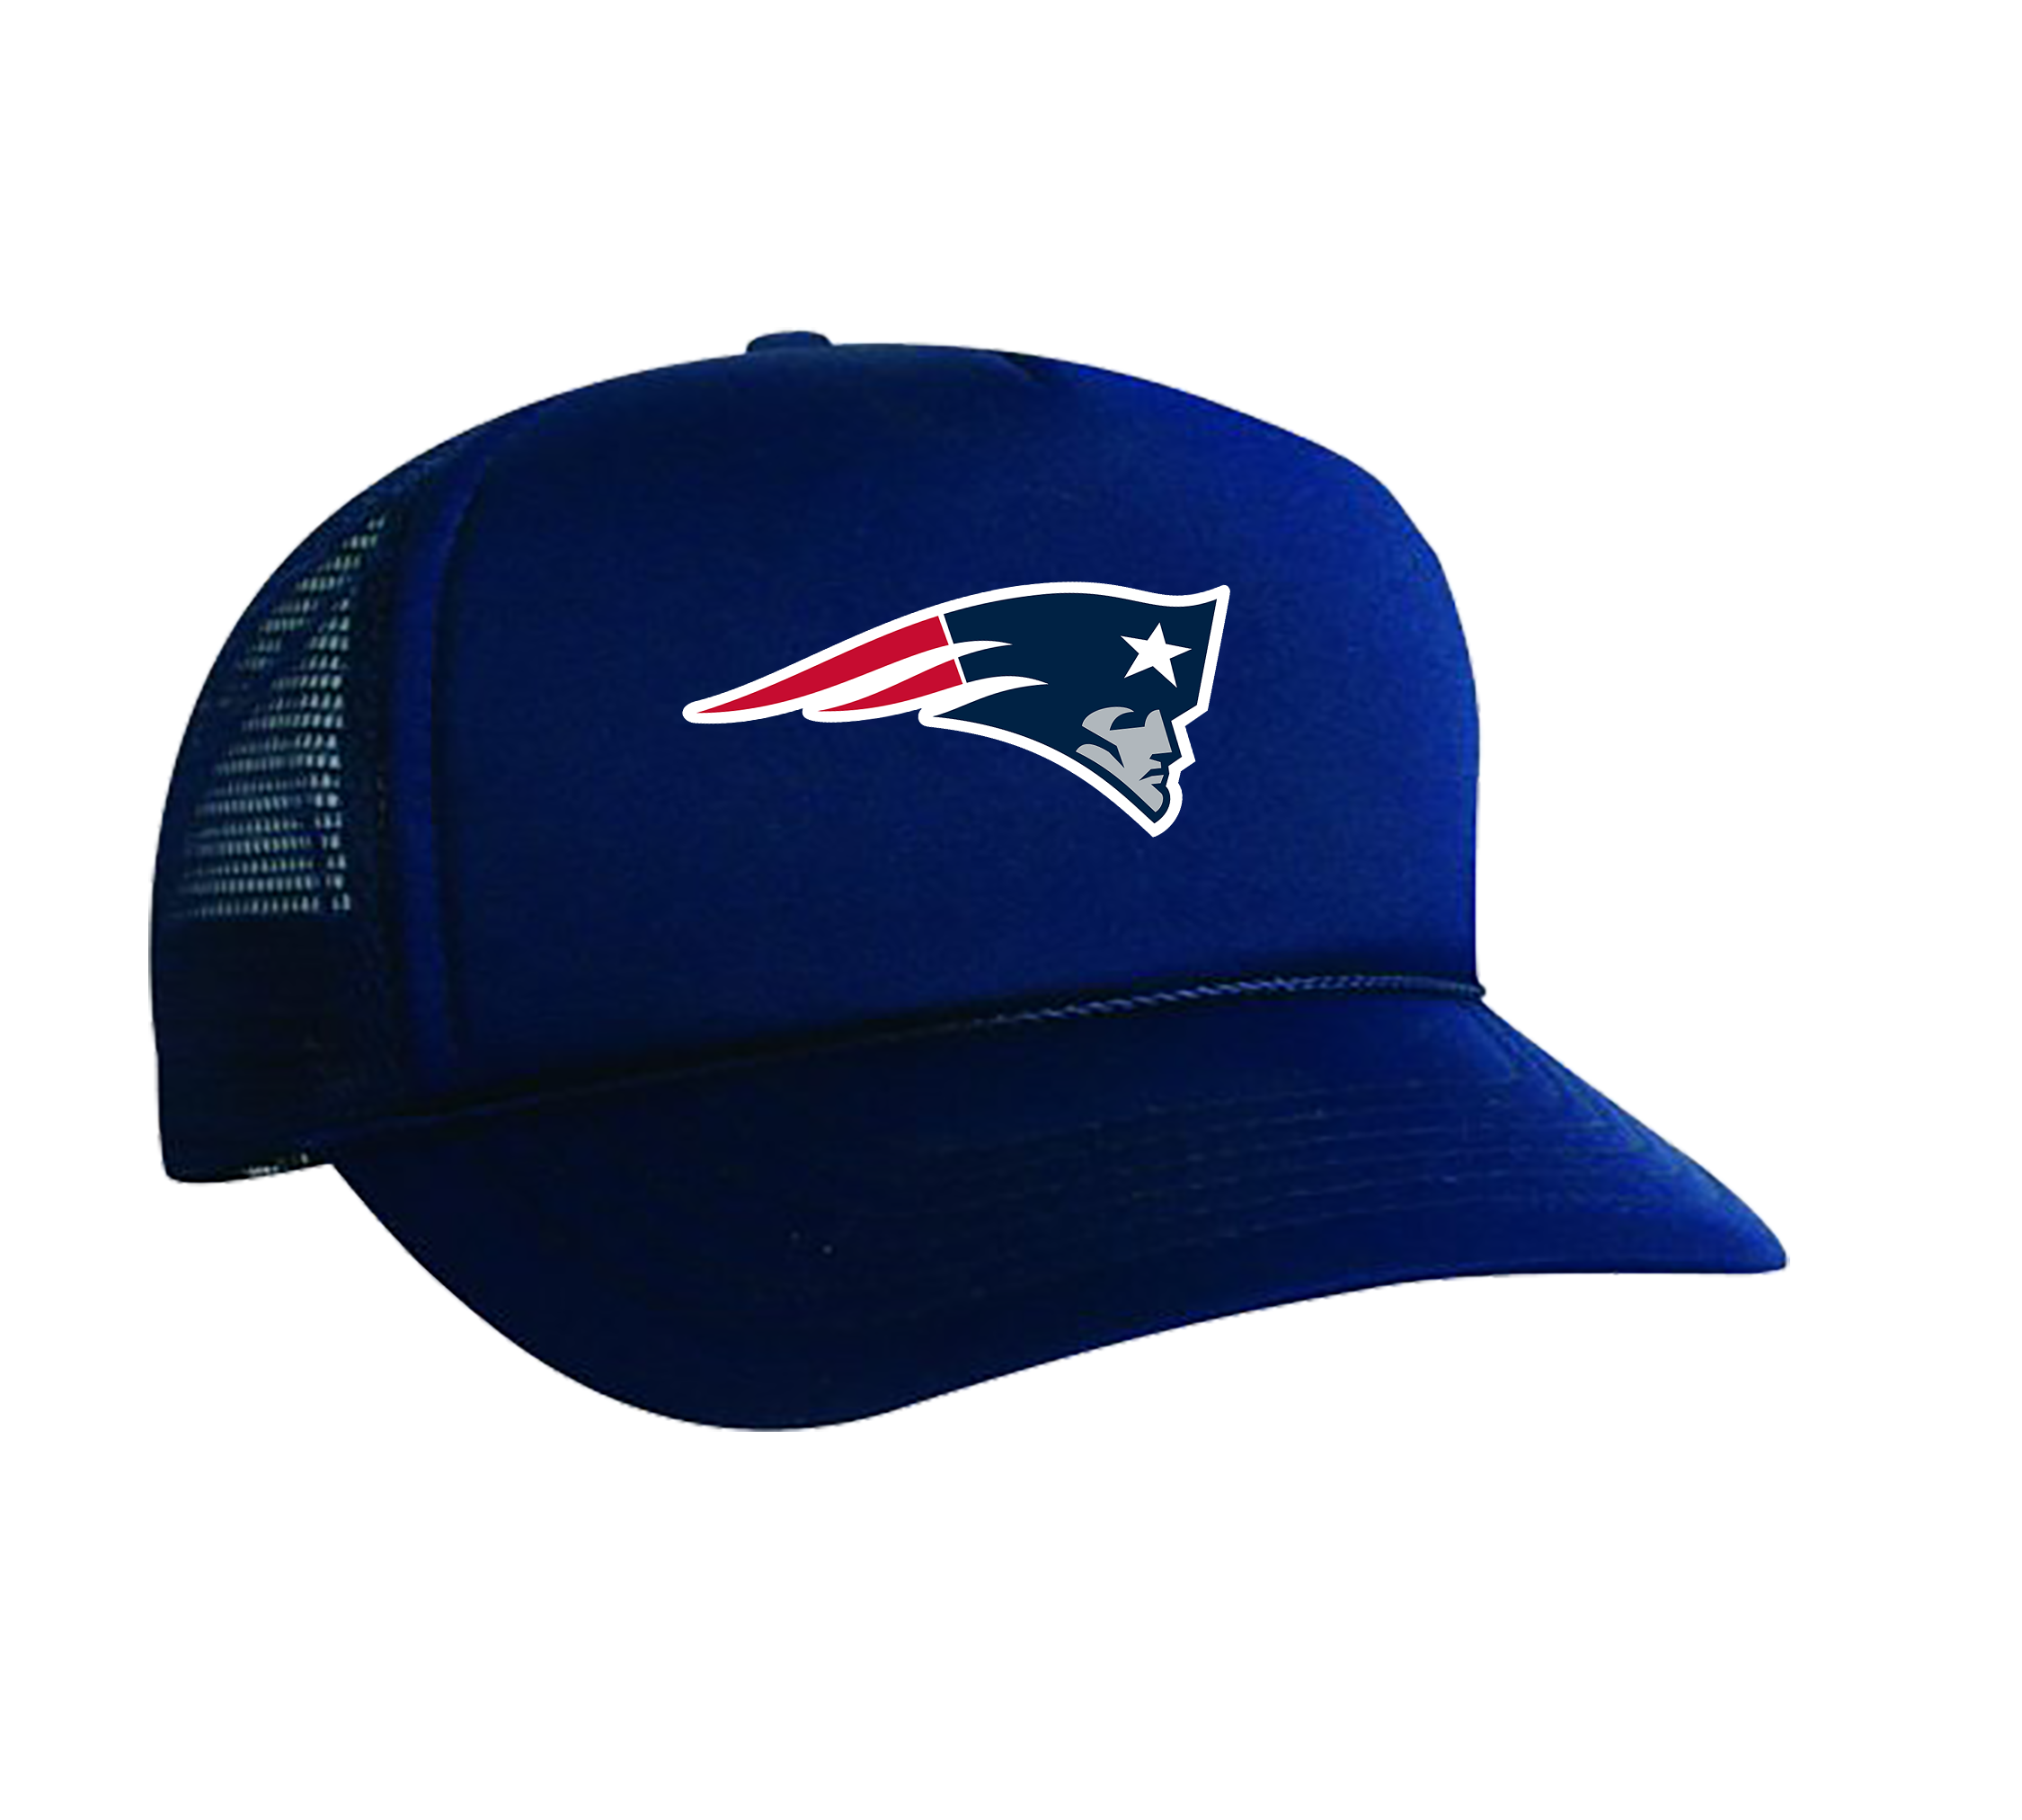 NFL PATRIOTS LOGO NAVY PRINTED HAT.